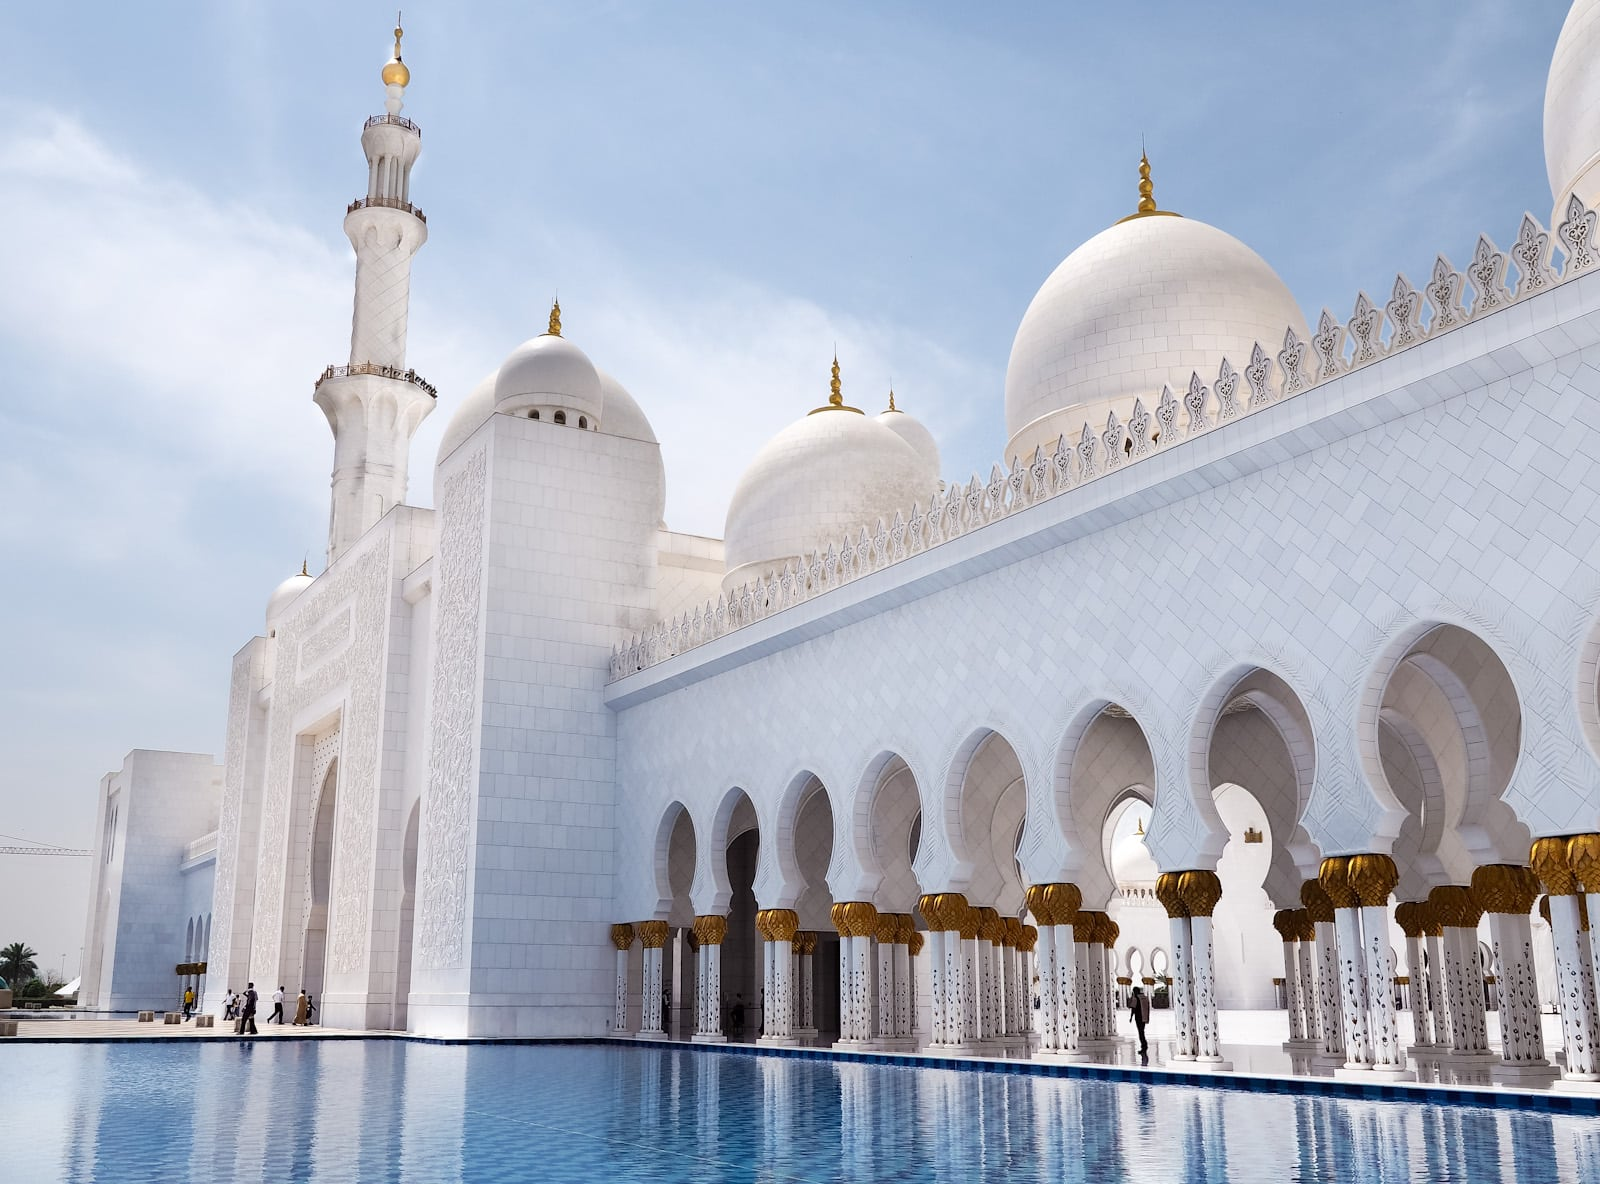 Reflections at Abu Dhabi Sheikh Zayed Grand Mosque The Travel Escape Blog